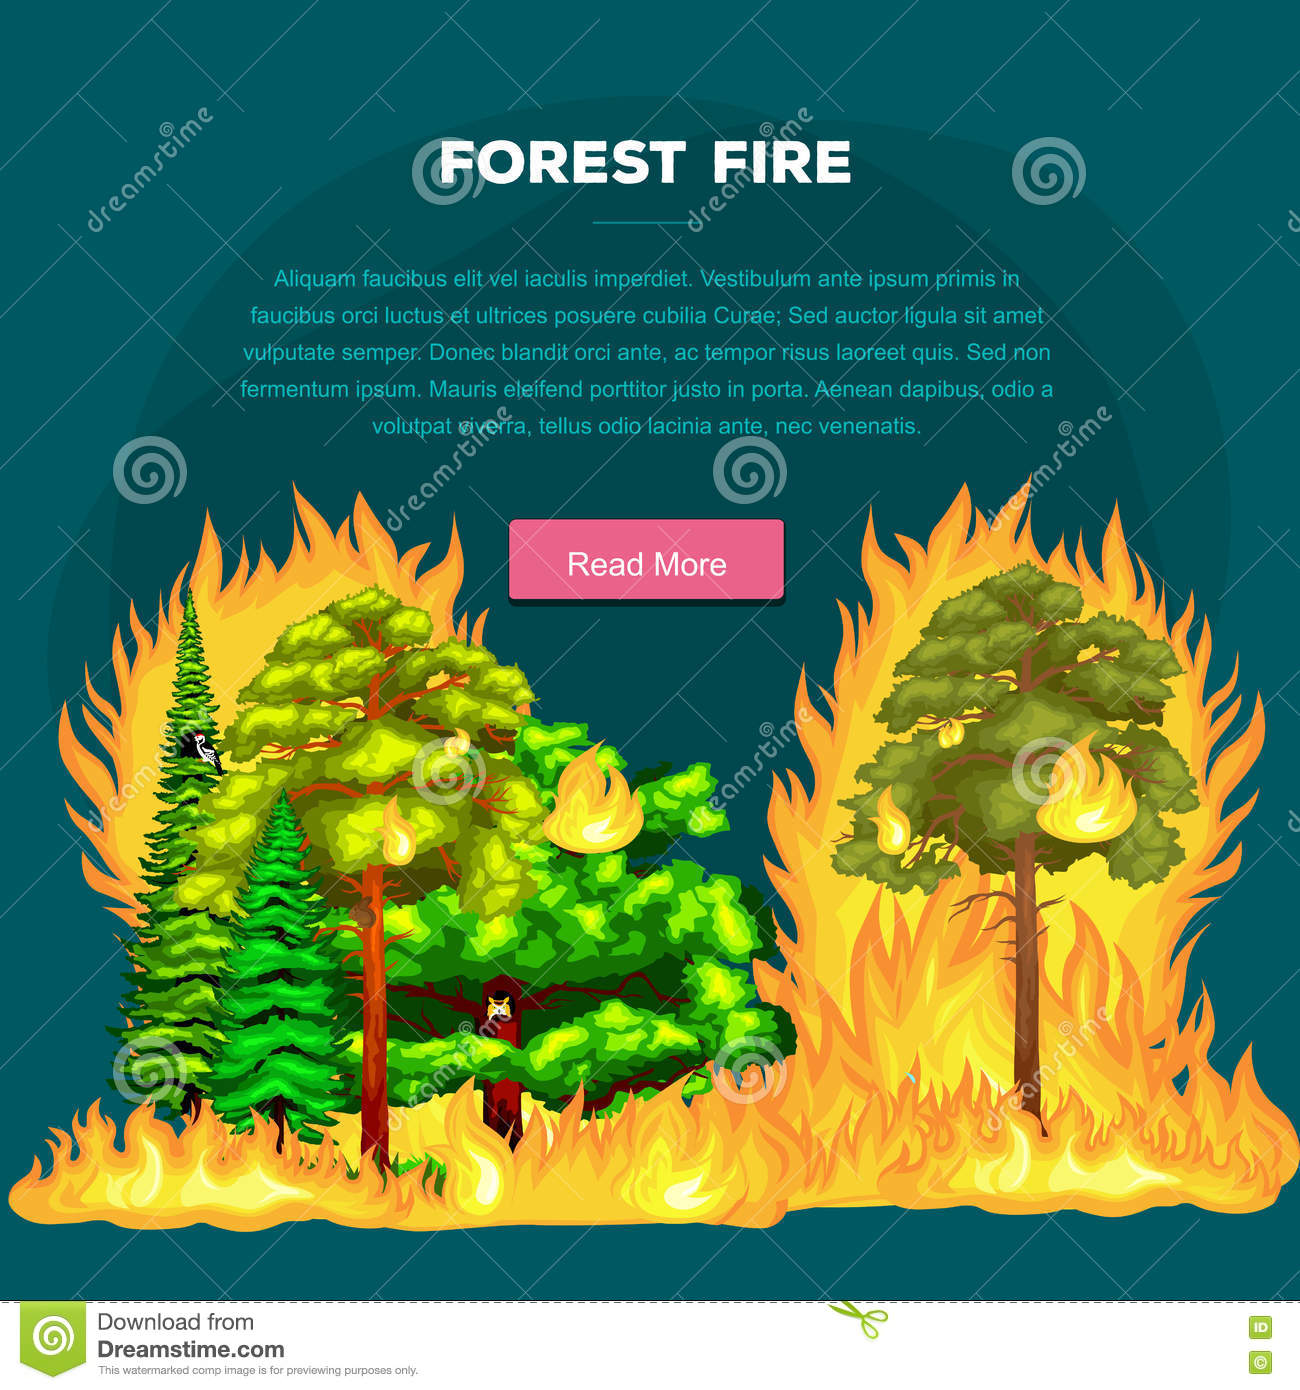 Nature Ecology: Forest Fire, Fire In Forest Landscape Damage, Nature